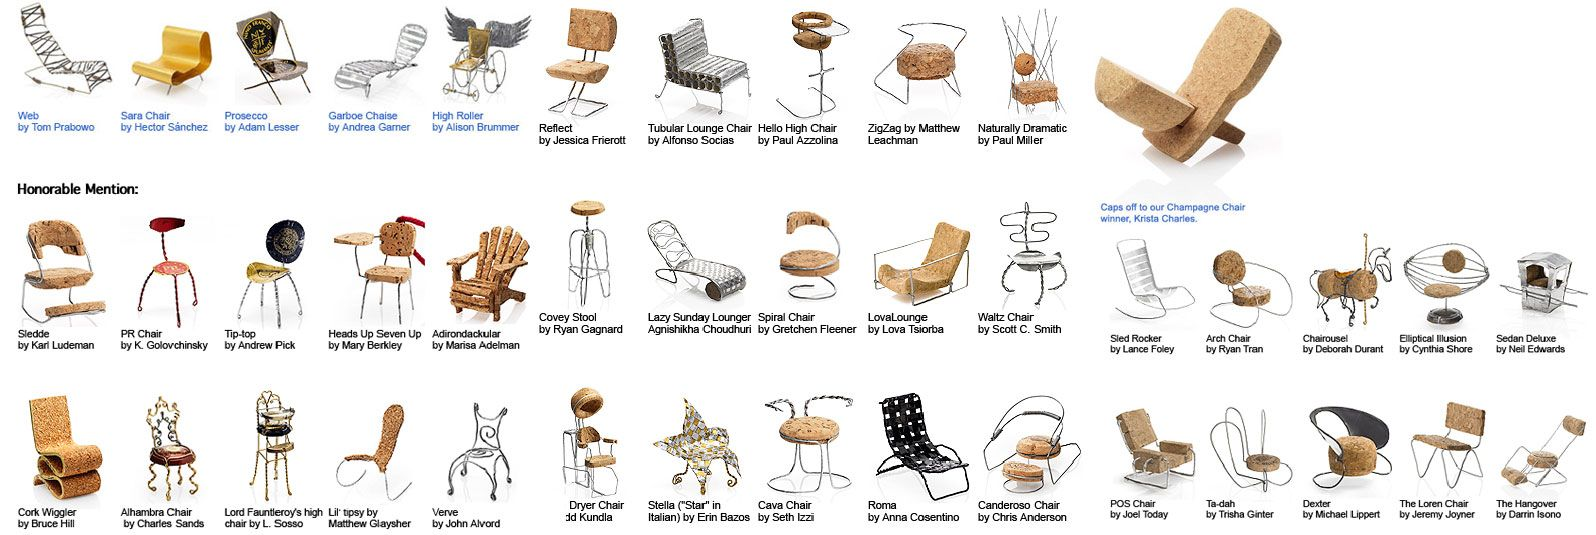 Call of the Small: Design Within Reach Champagne Chair Contest ...